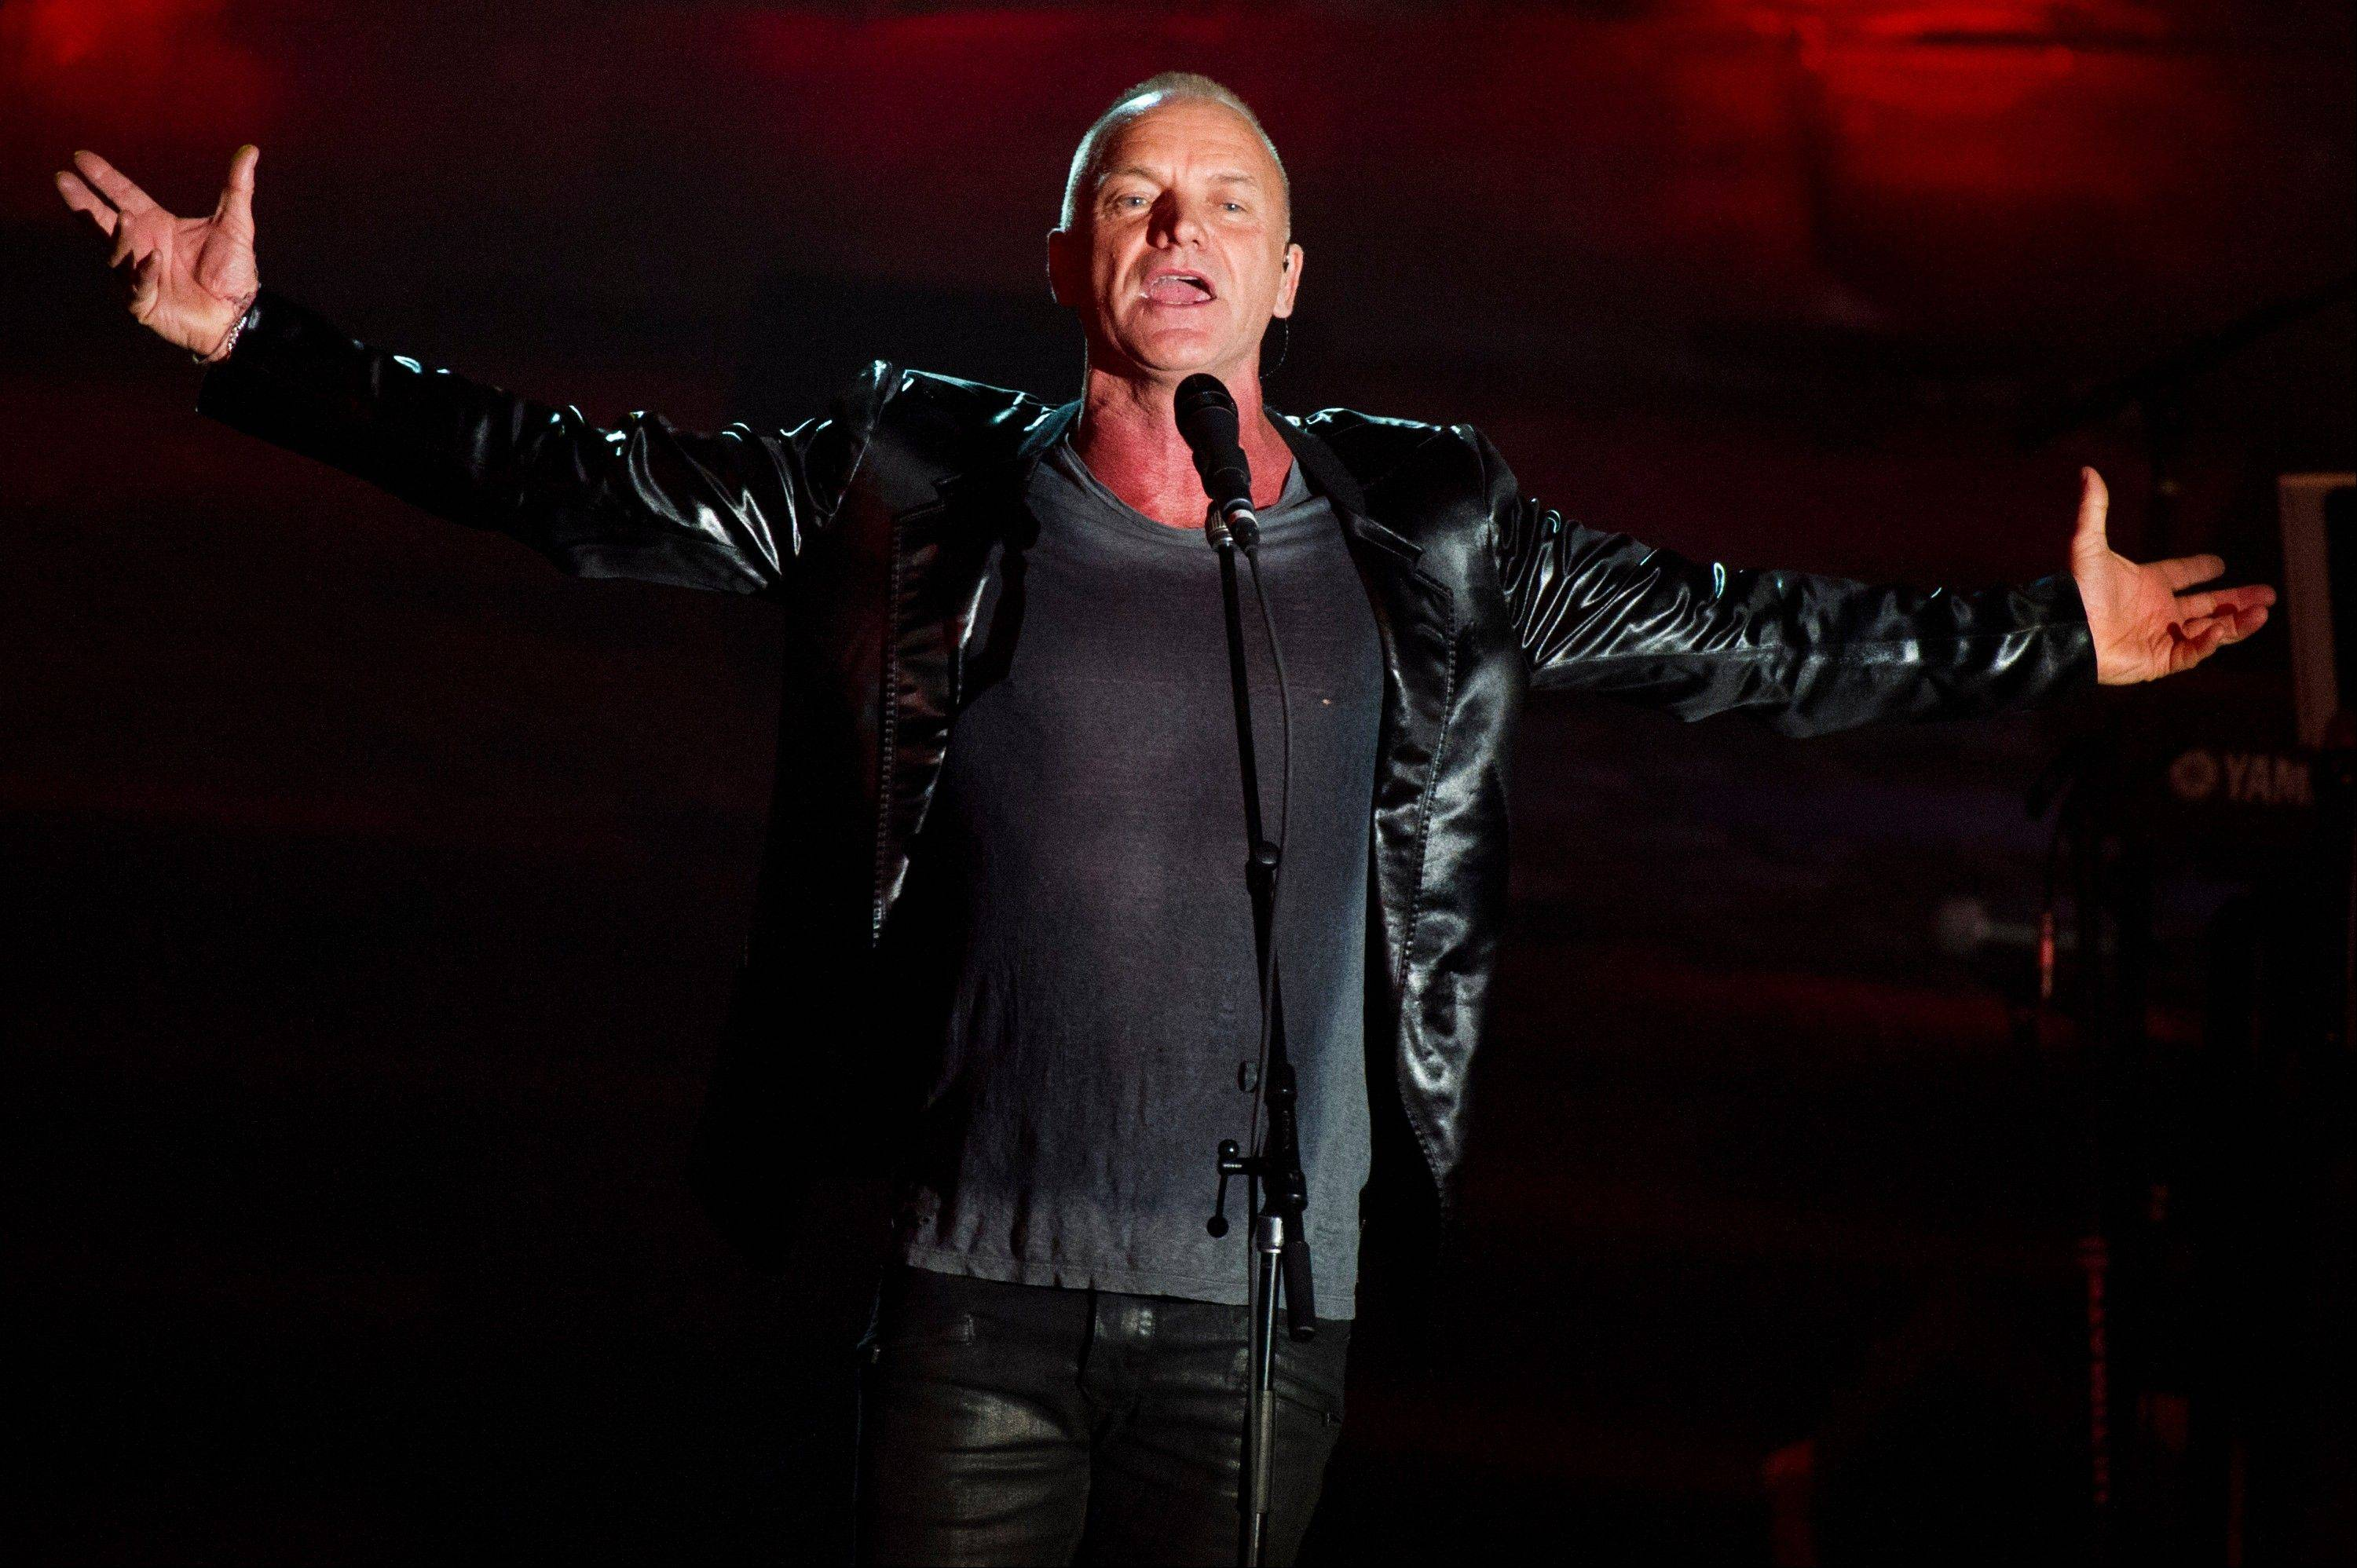 Sting performs at the Songwriters Hall of Fame 44th annual induction and awards gala on Thursday.